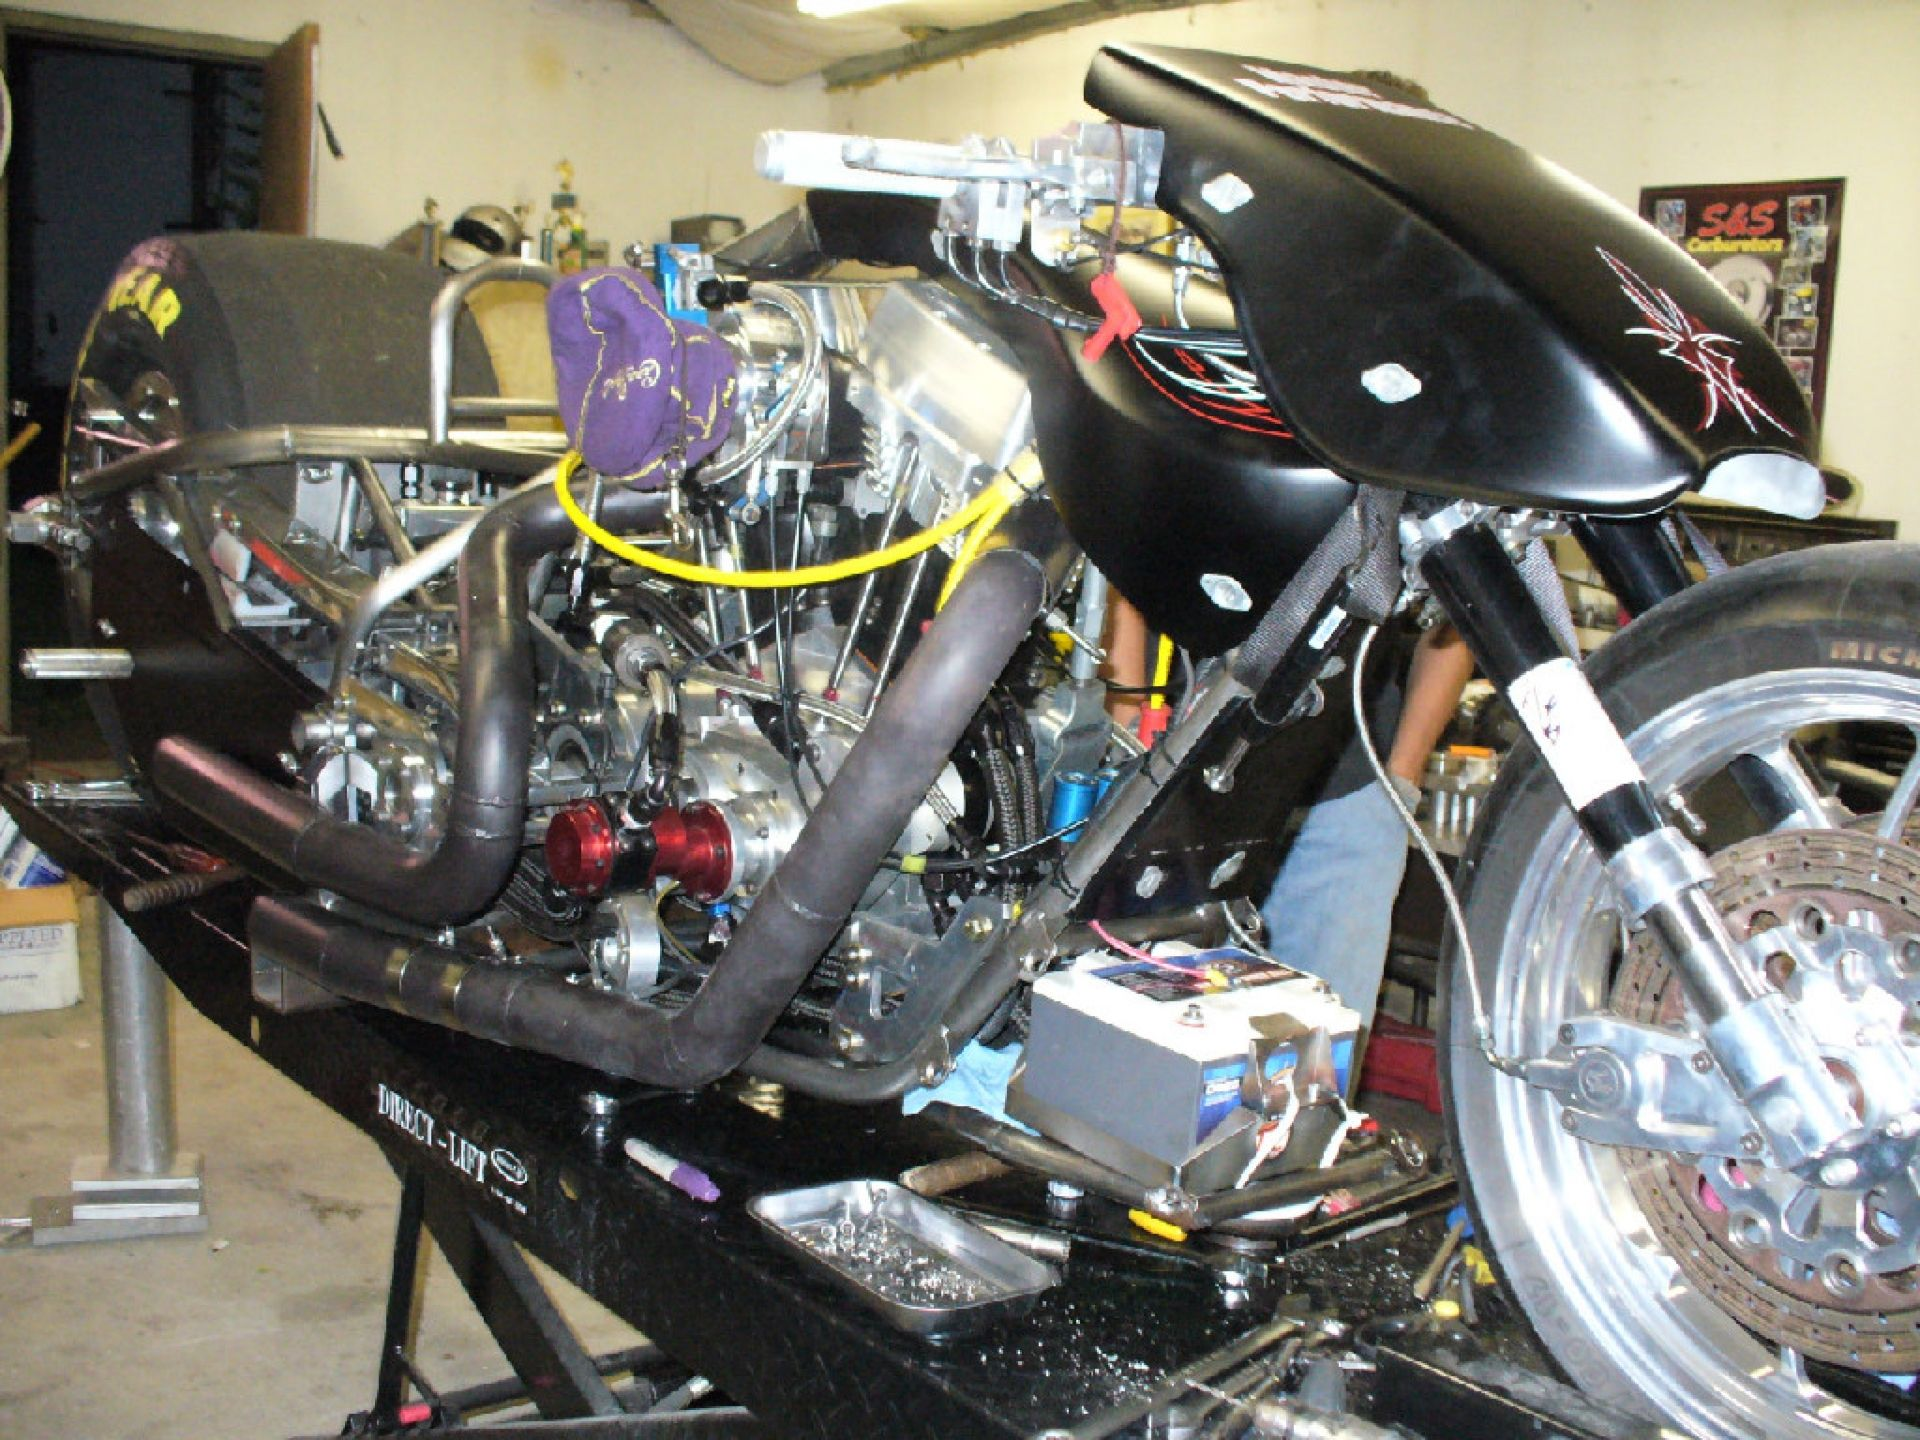 Top Fuel Nitro Dragbike Motorcycle Drag Racing Drag Bike